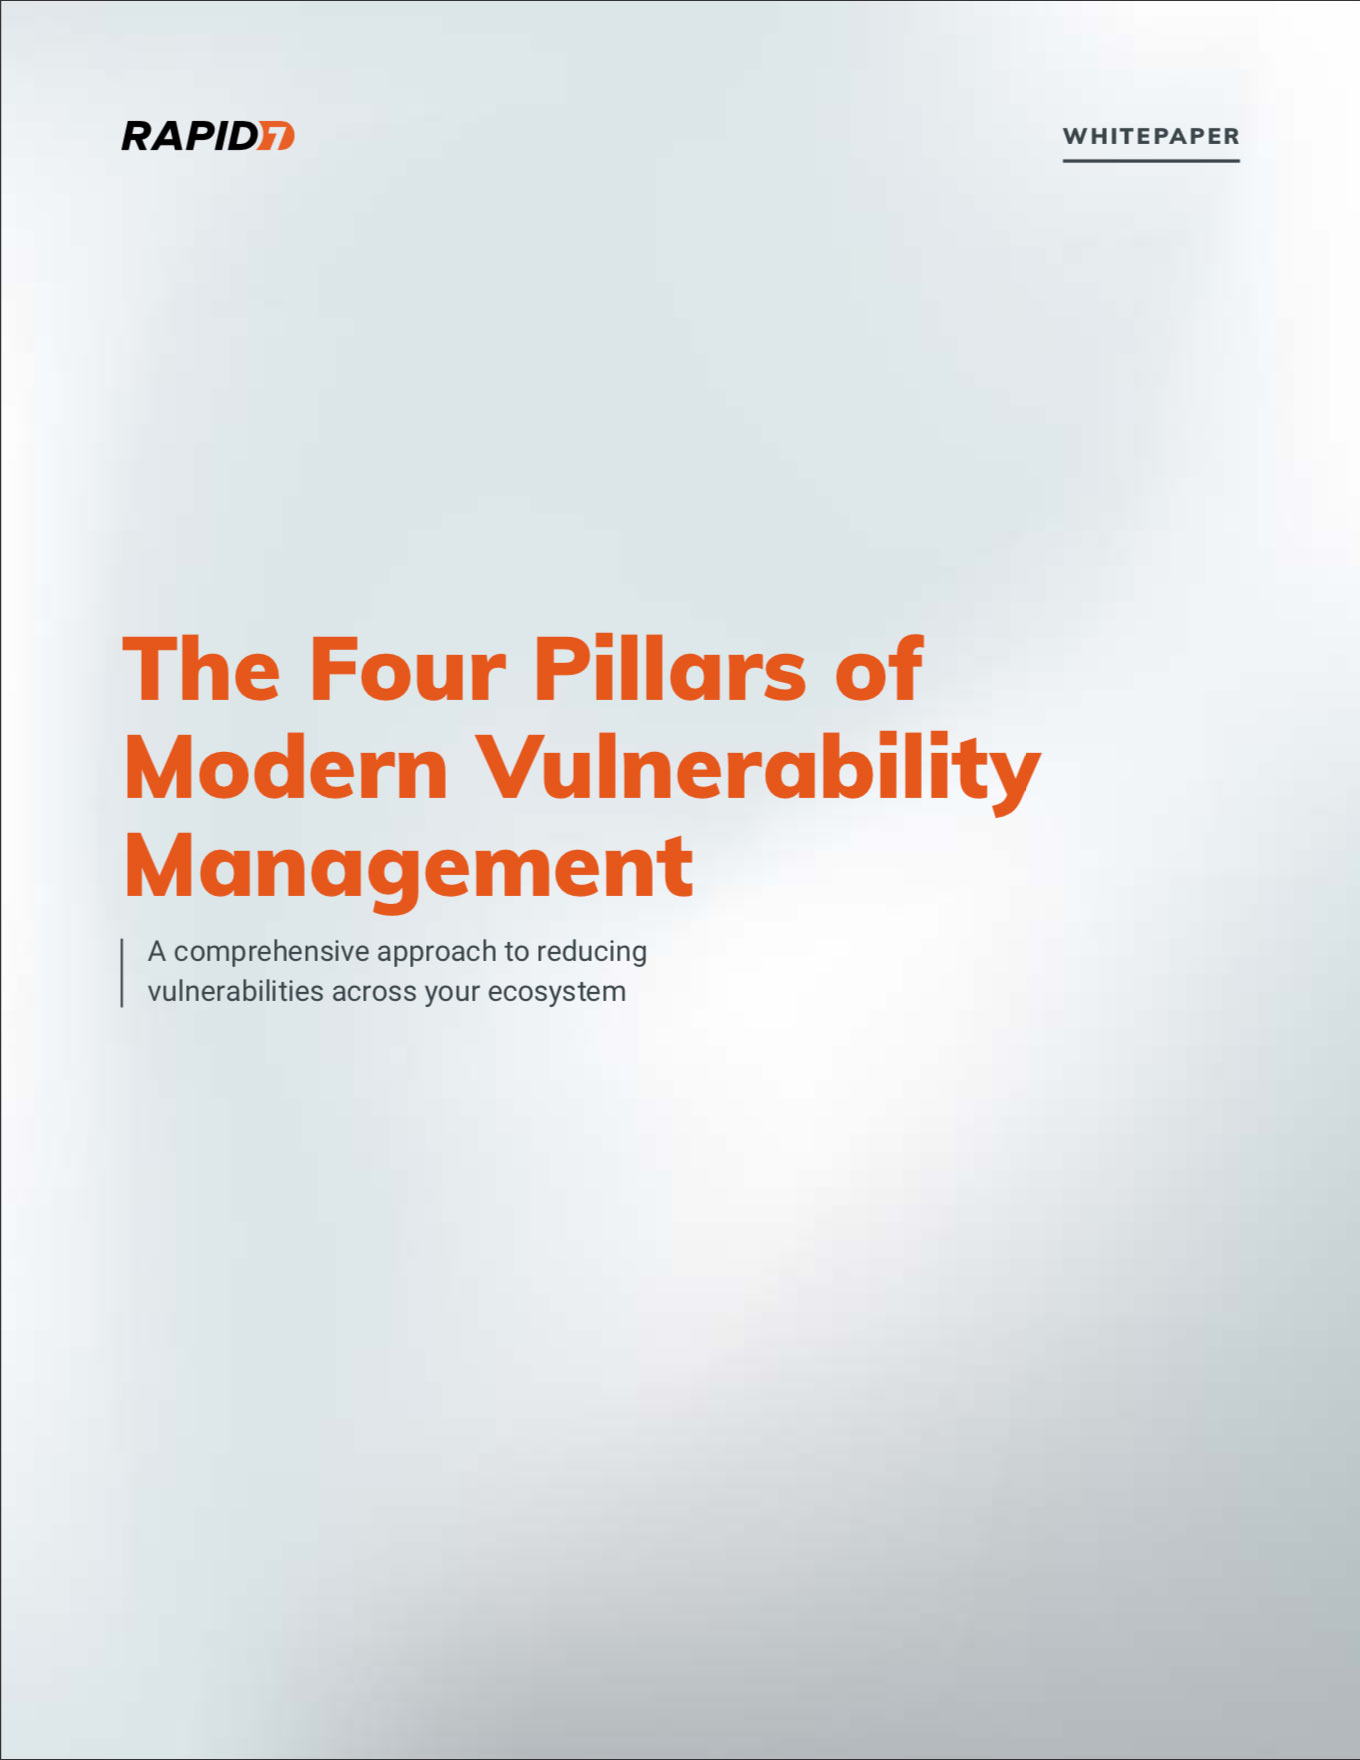 Rapid7 Whitepaper: The Four Pillars of Modern Vulnerability Management